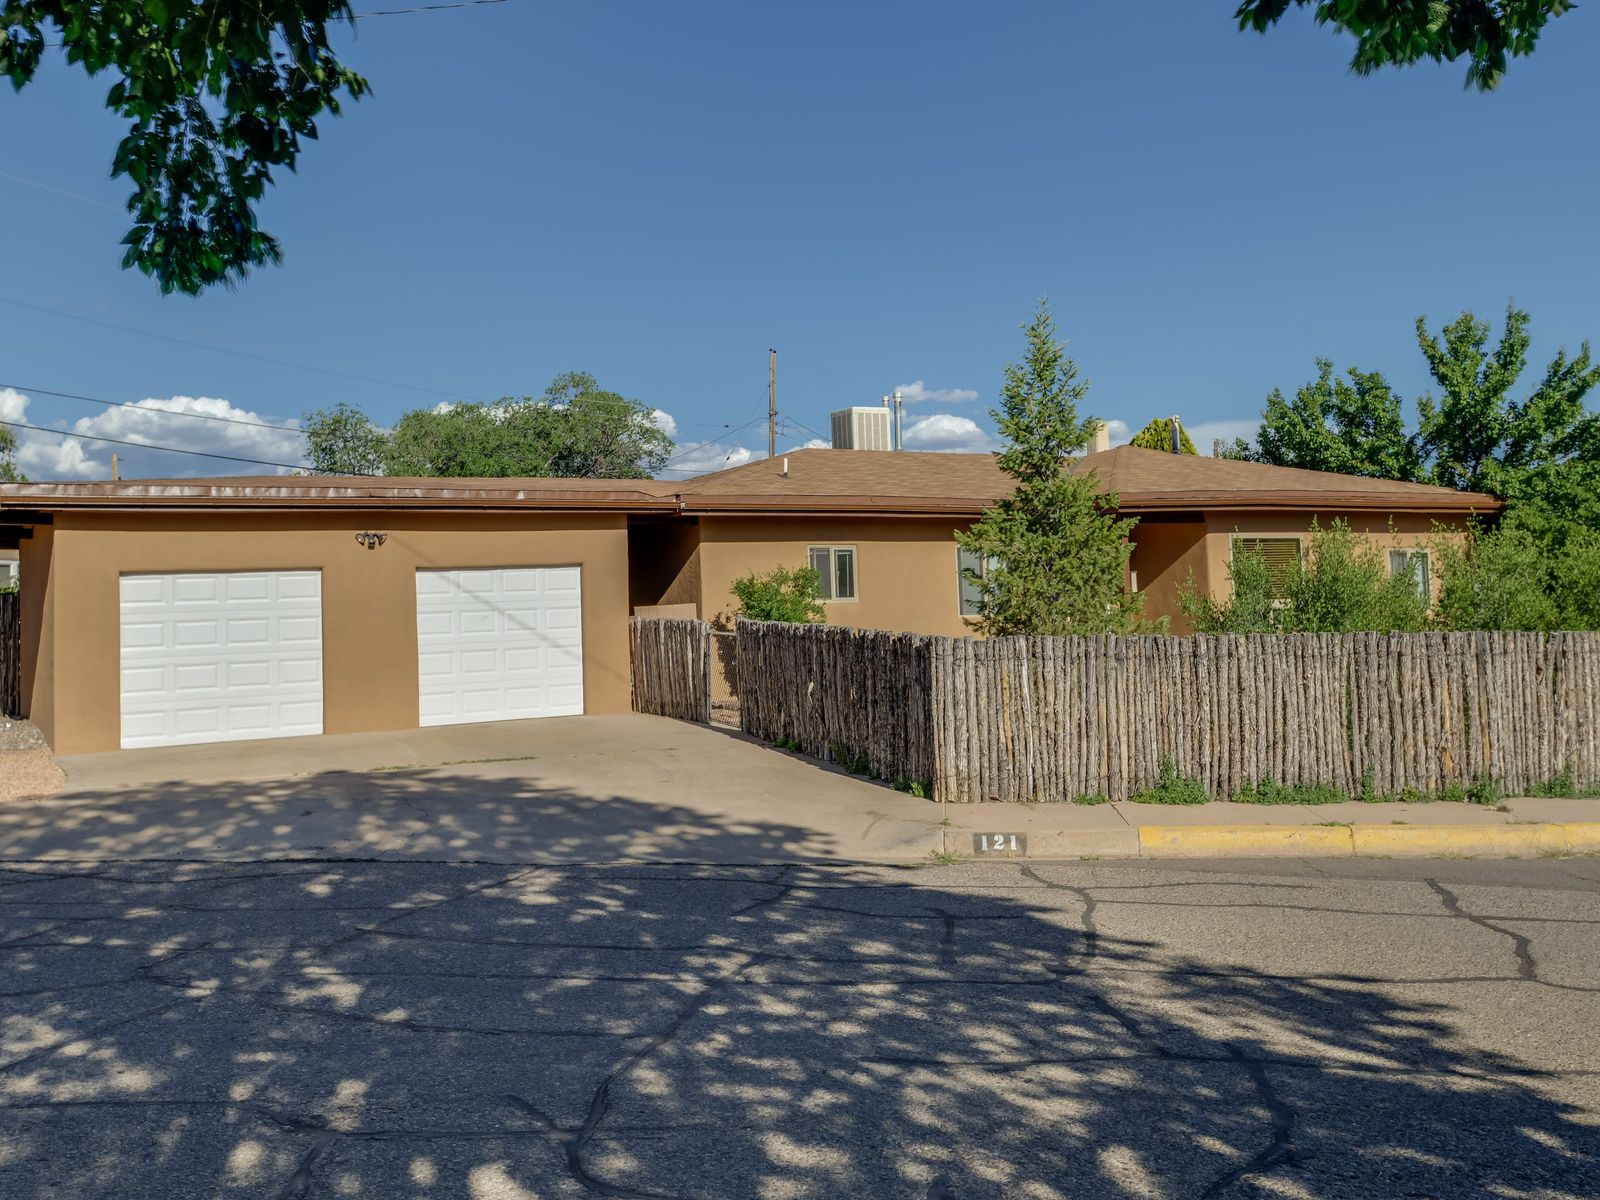 121 Sicomoro Street, Santa Fe NM Single Family Home - Santa Fe Real Estate